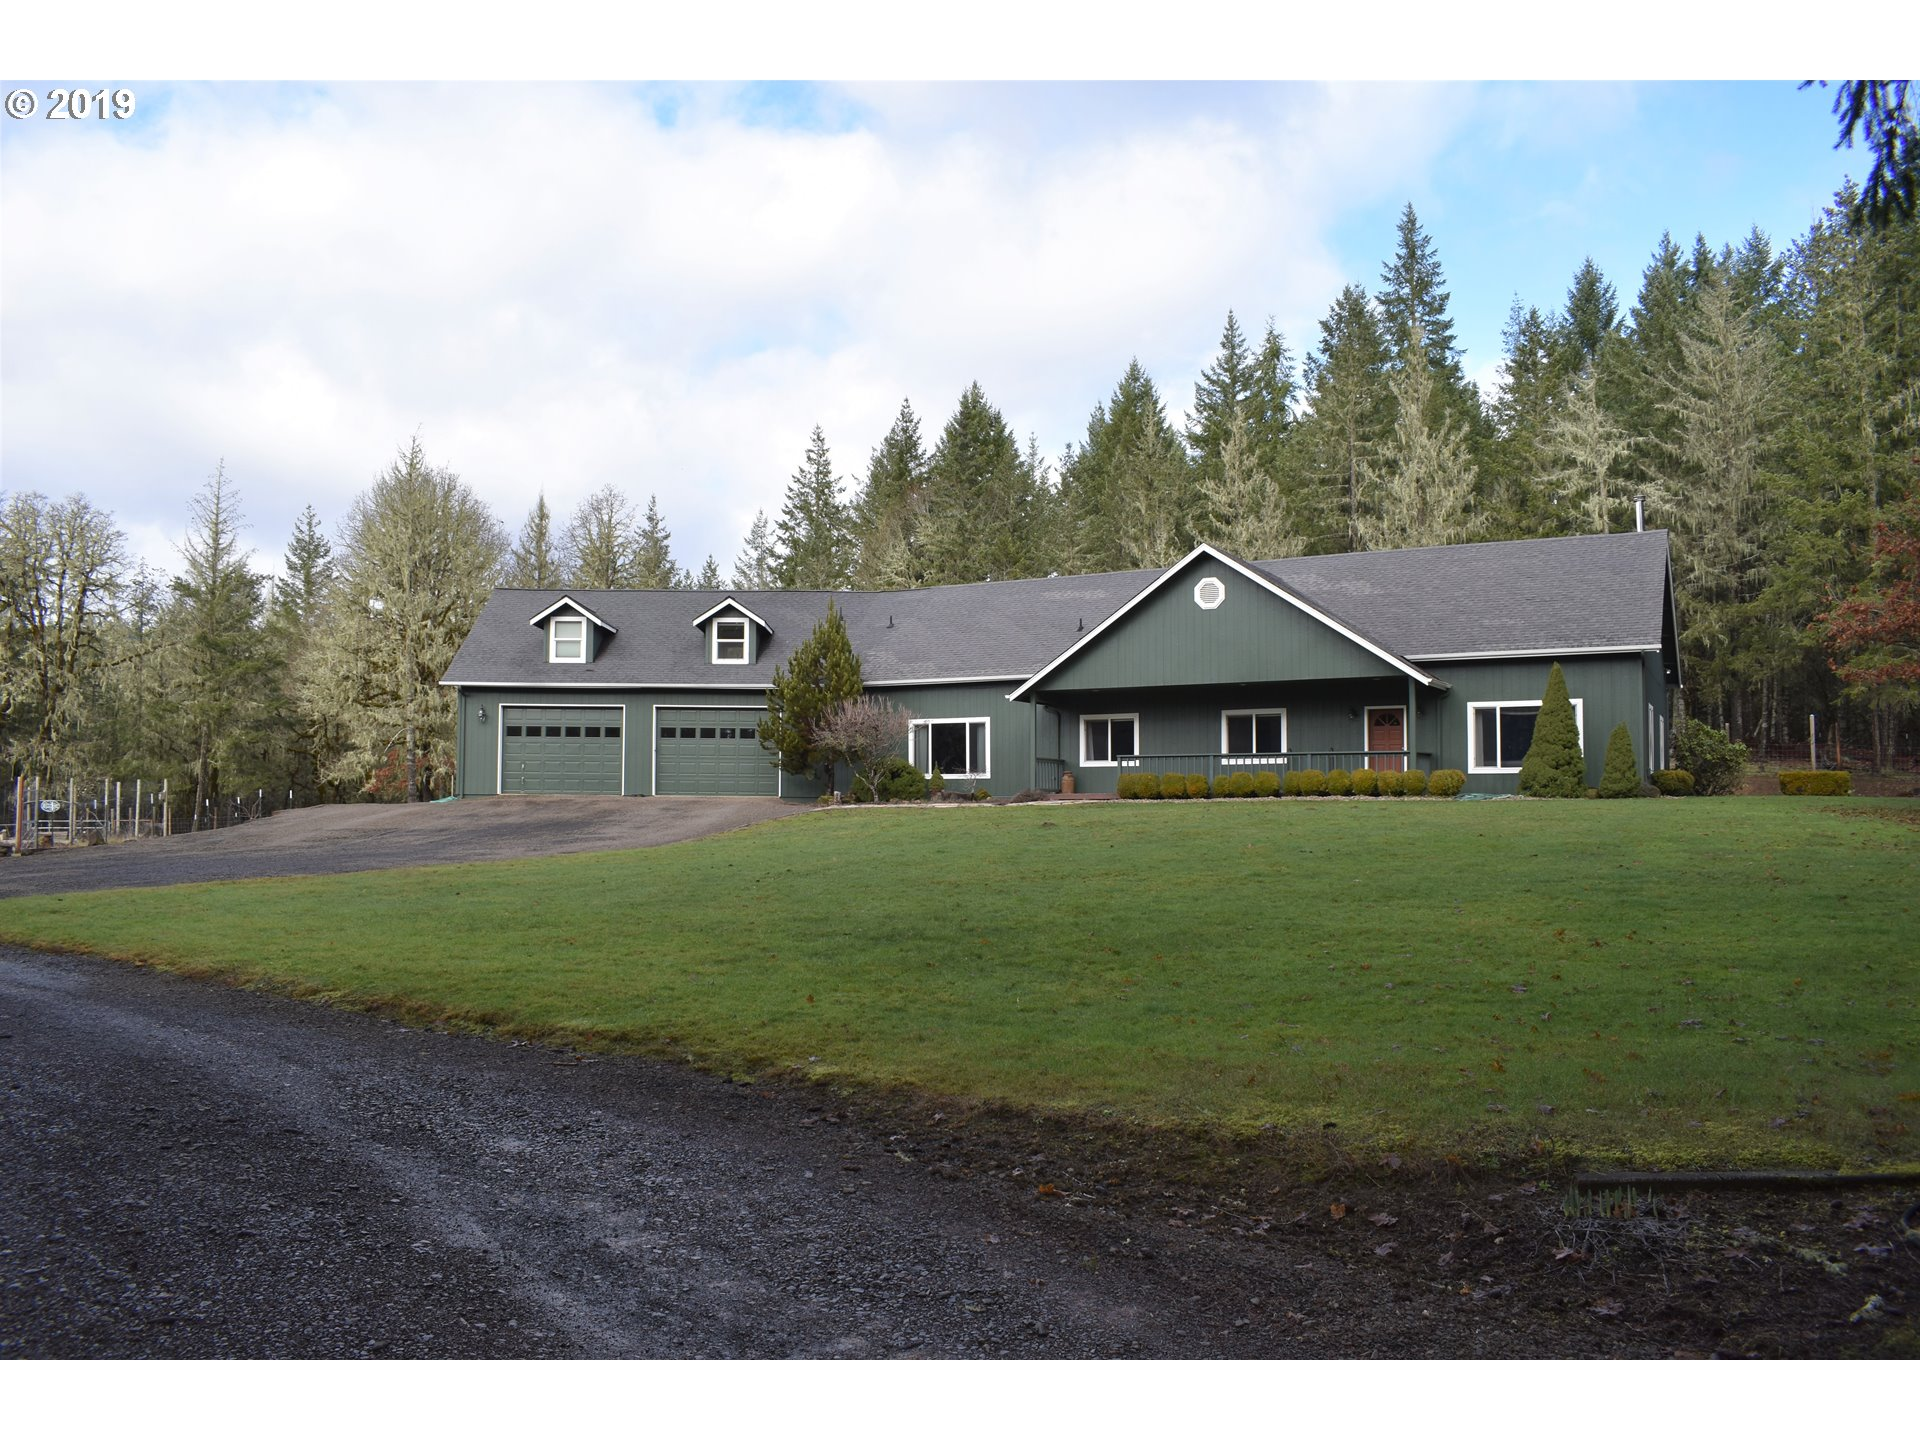 39285 UPPER CAMP CREEK RD Eugene Home Listings - Galand Haas Real Estate